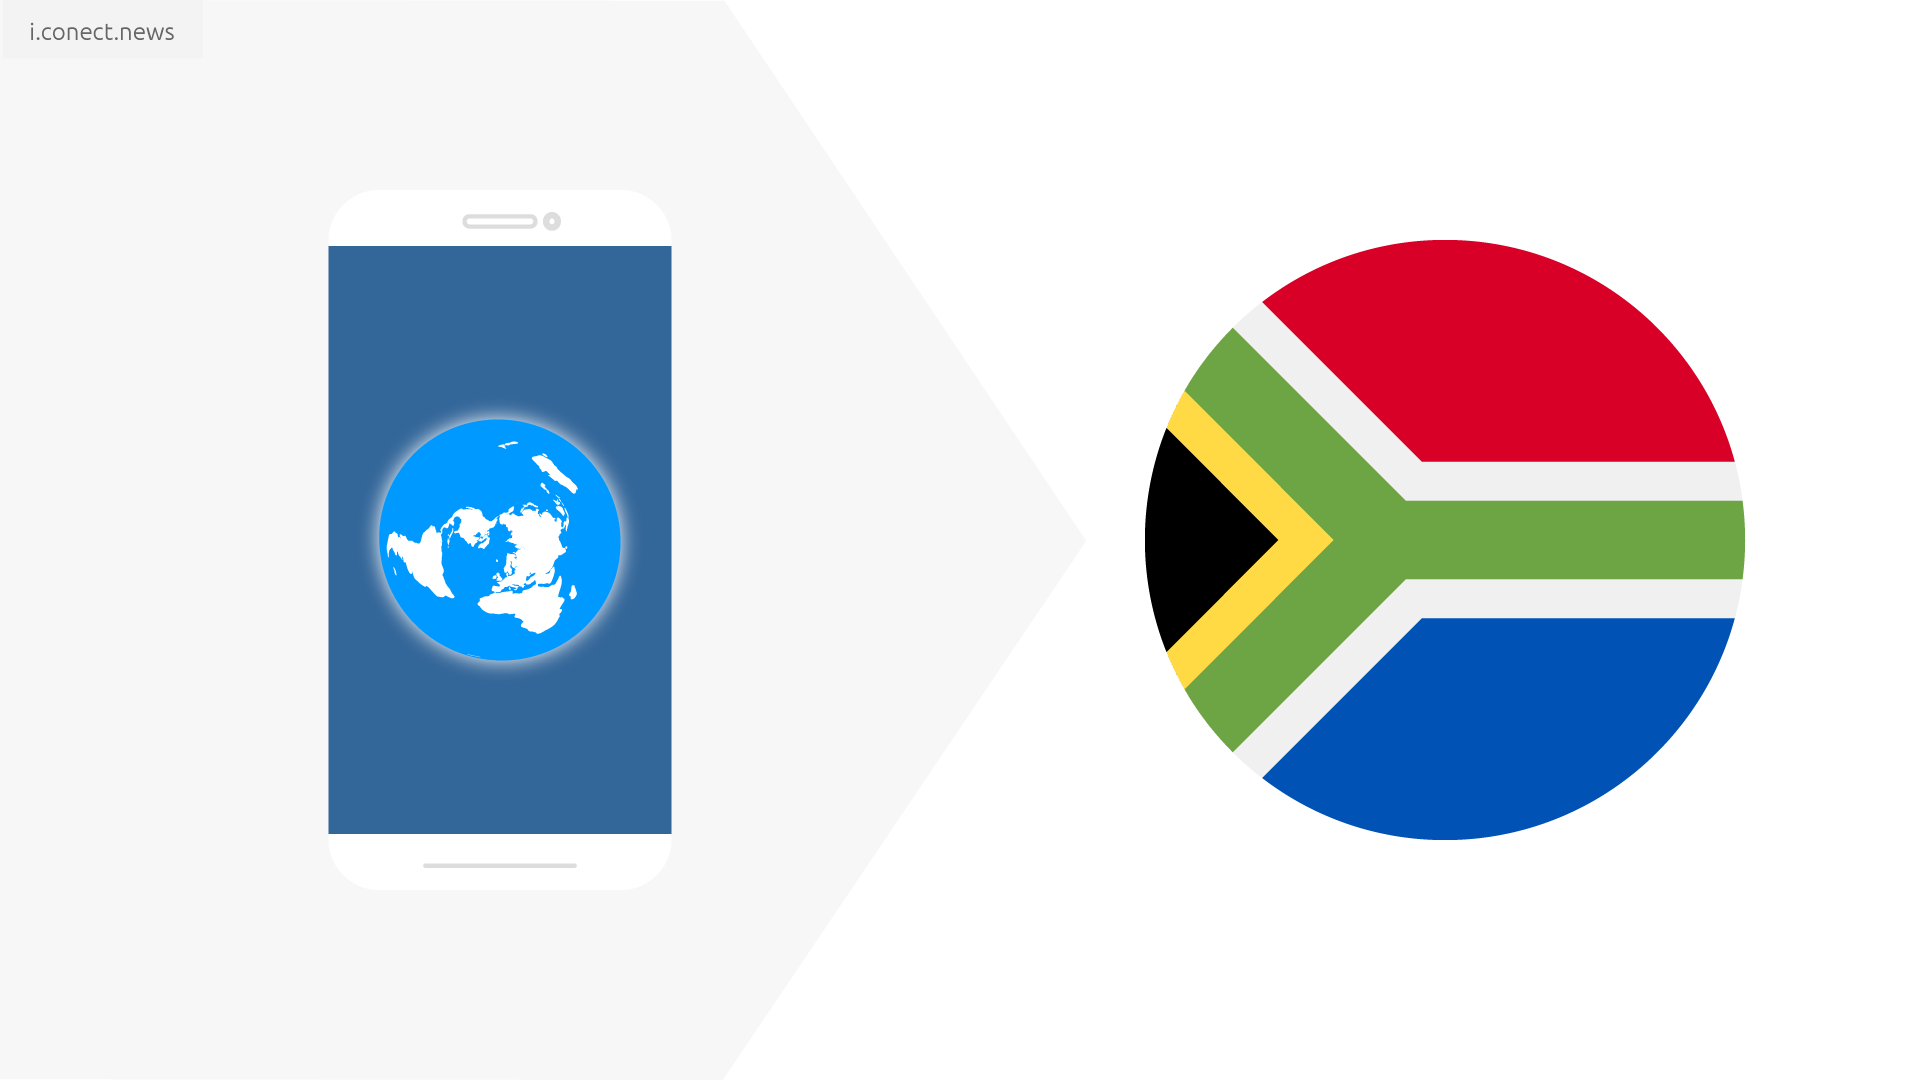 Calling South Africa  @conect_news